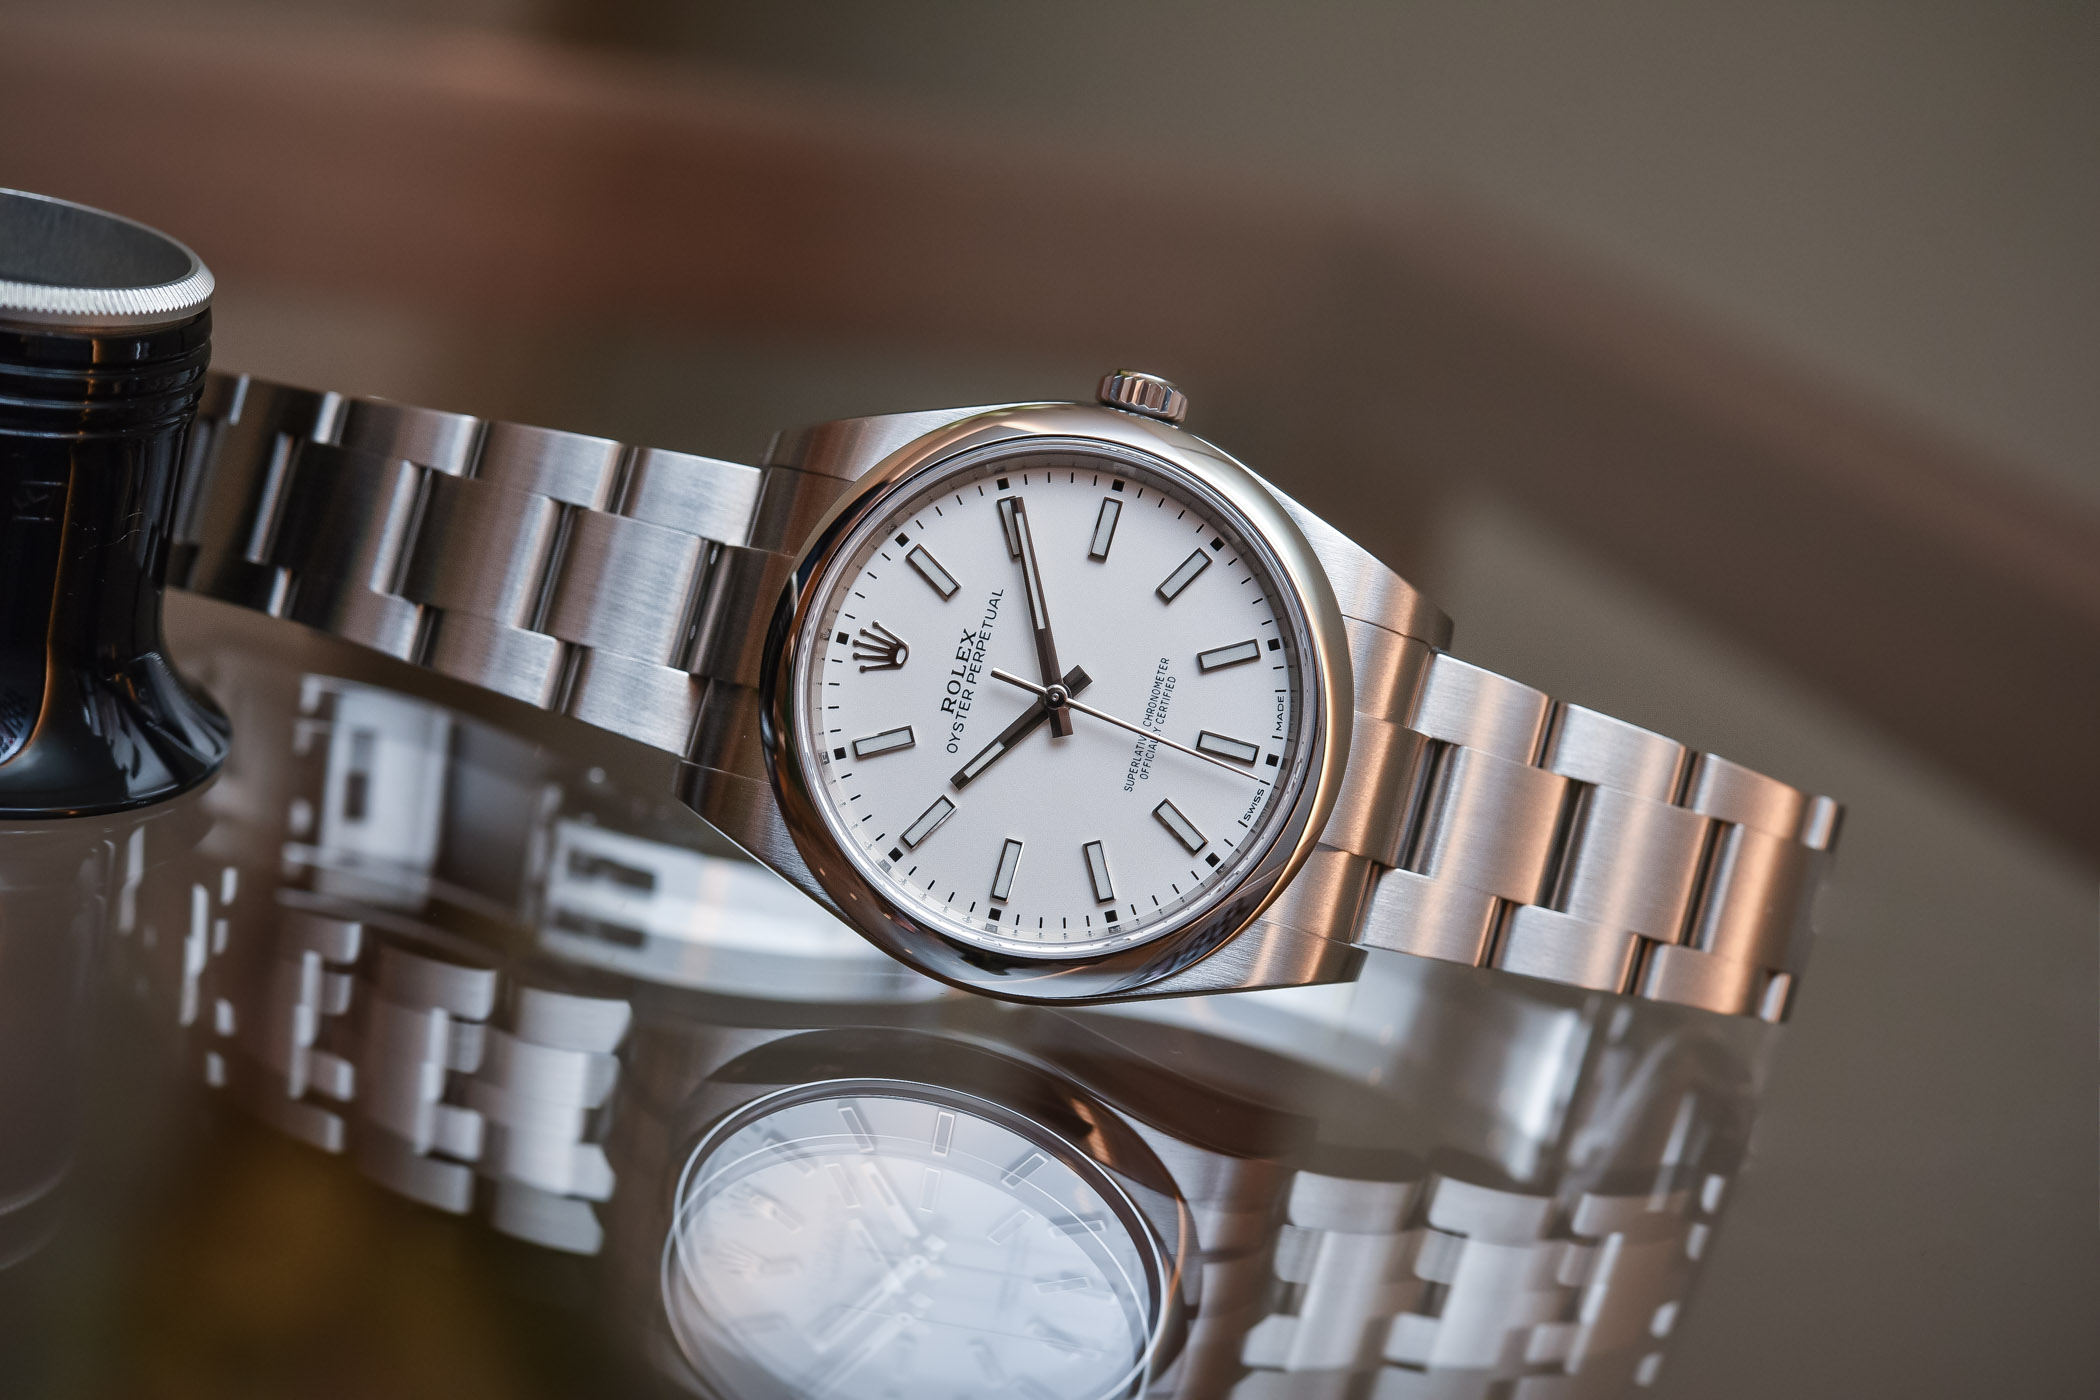 Rolex-Oyster-Perpetual-39-ref-114300-Whi